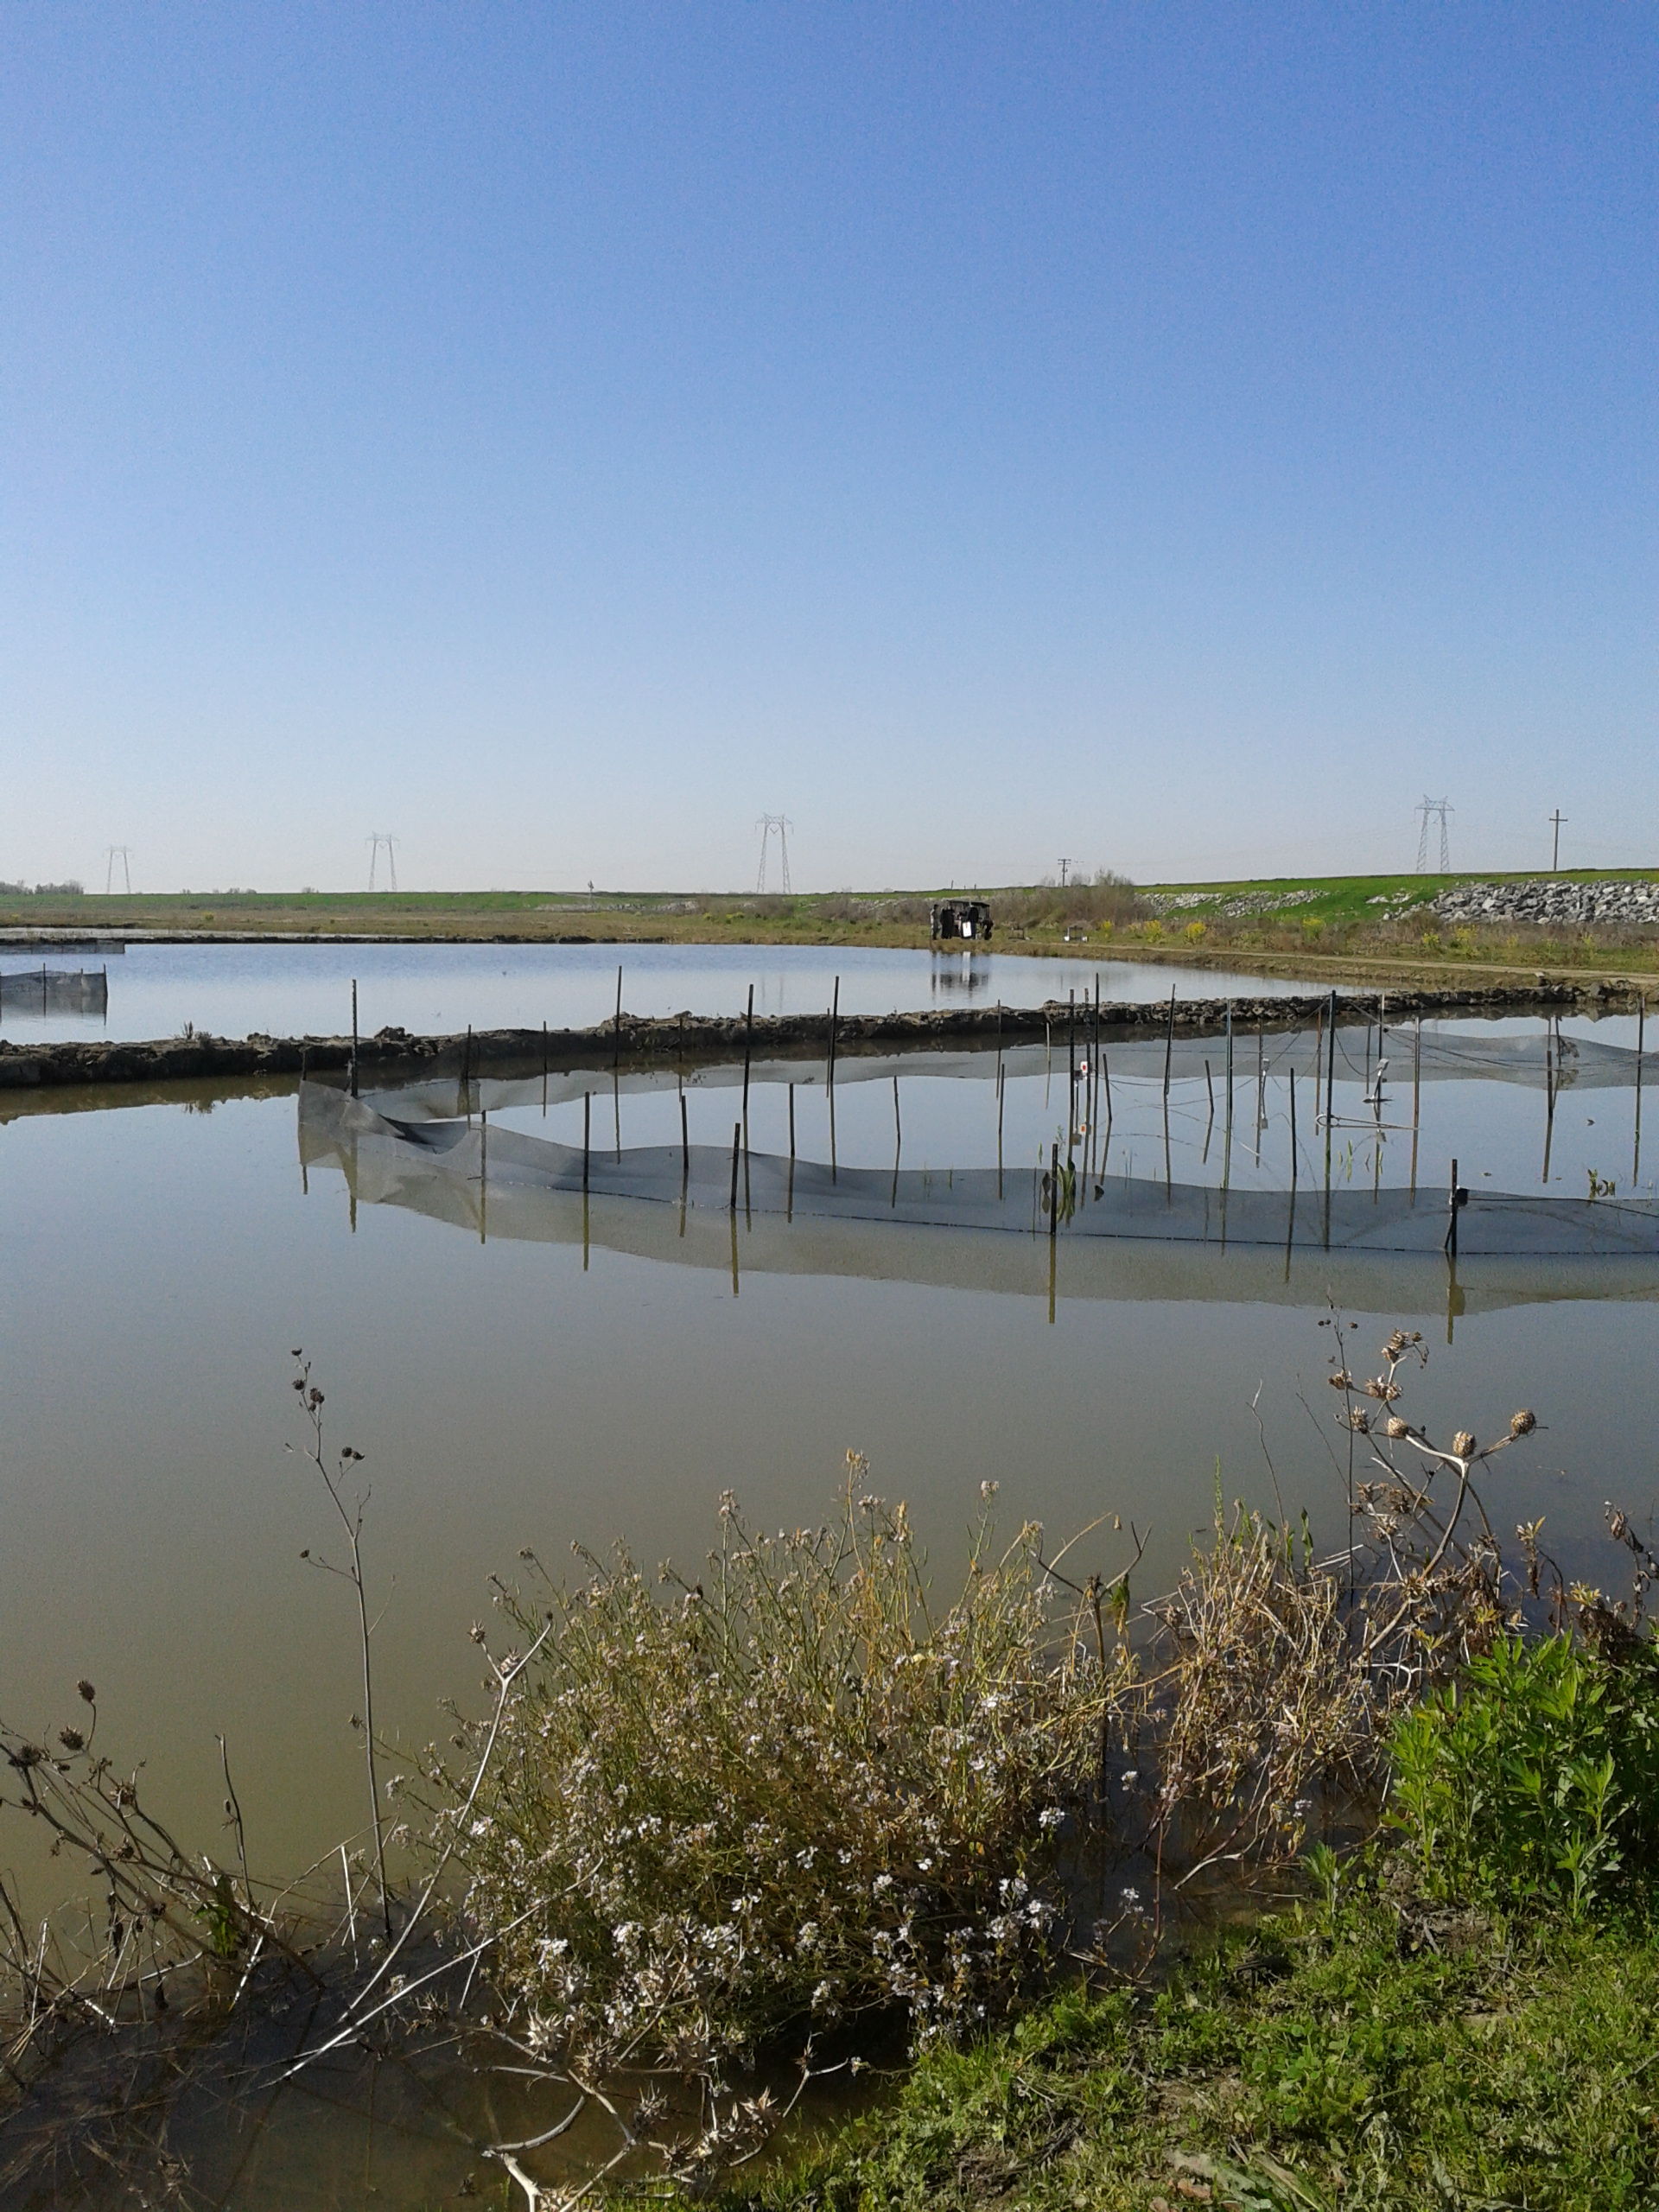 Surrogate wetlands, aka rice fields, provide seasonal floodplain for fish